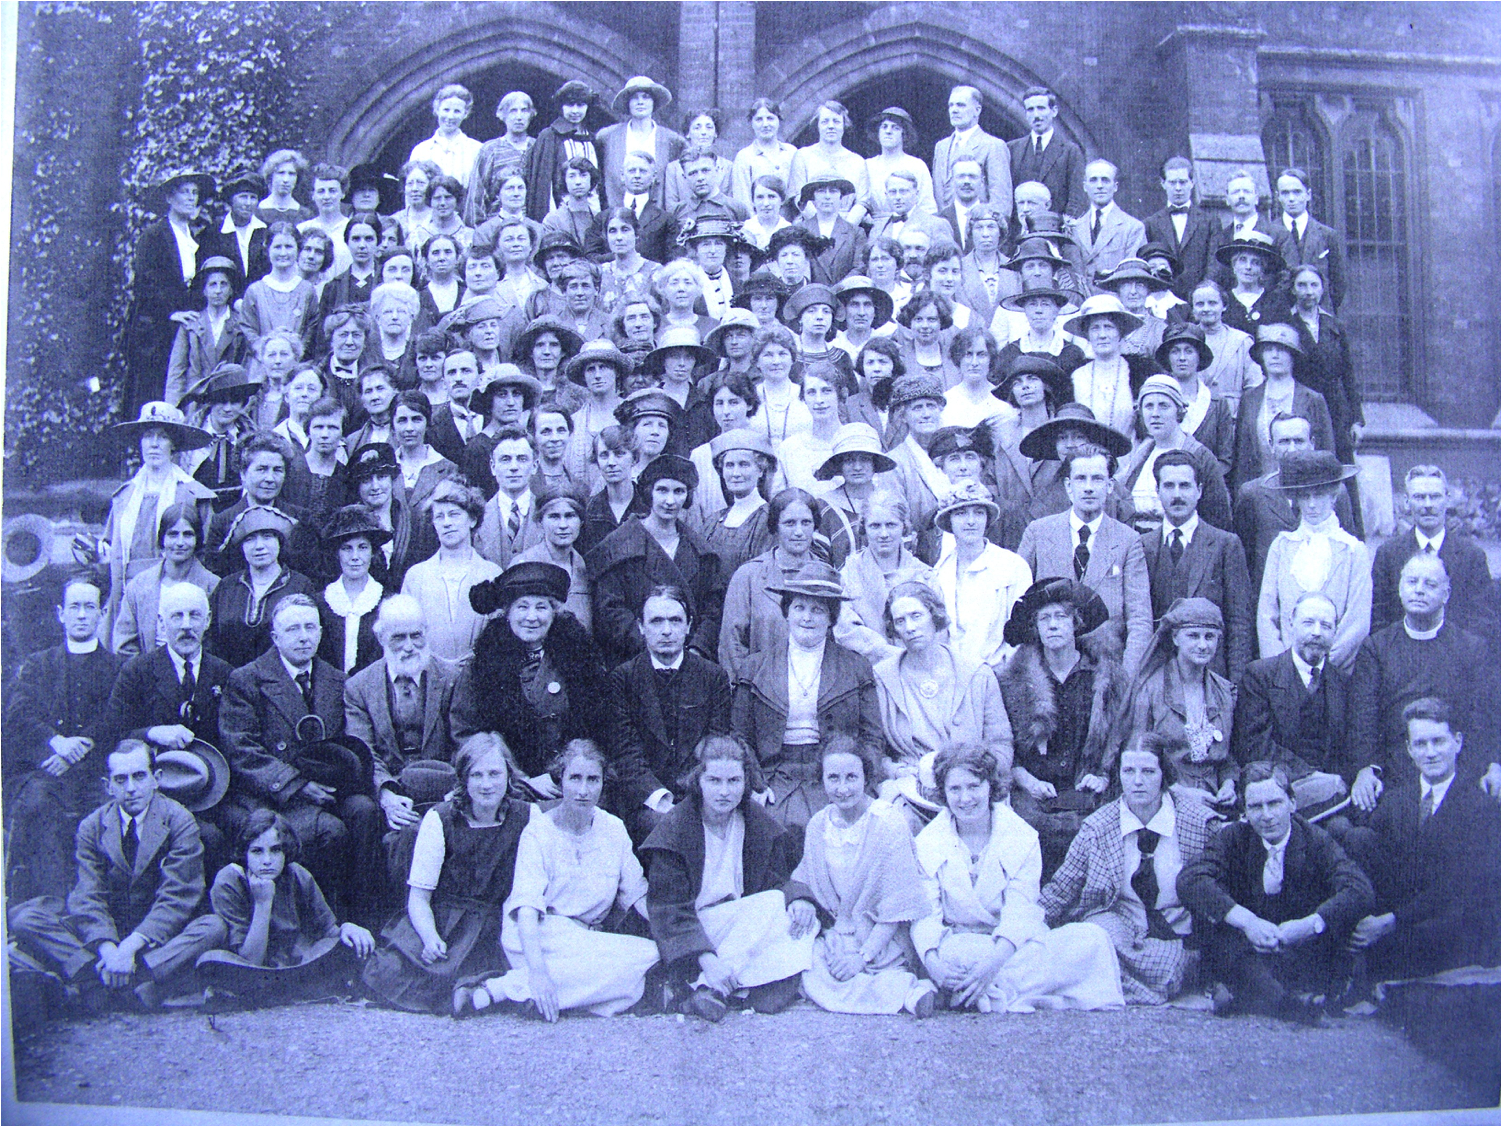 Oxford Conference group